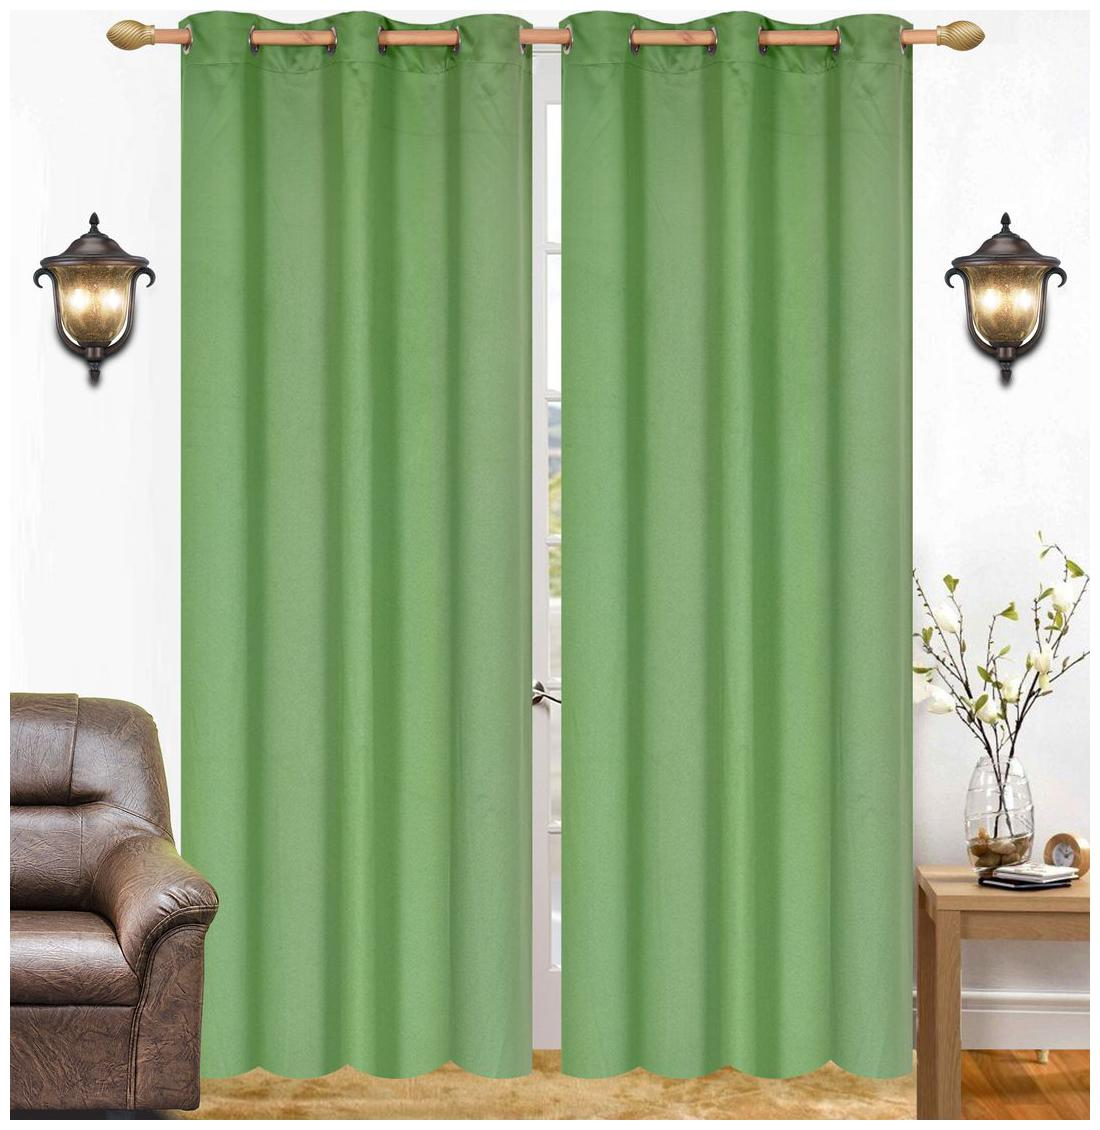 213.36 cm  84 inch  x 121.92 cm  48 inch  Brown Polyester Eyelet Door Curtain   Set of 2 by Azaani